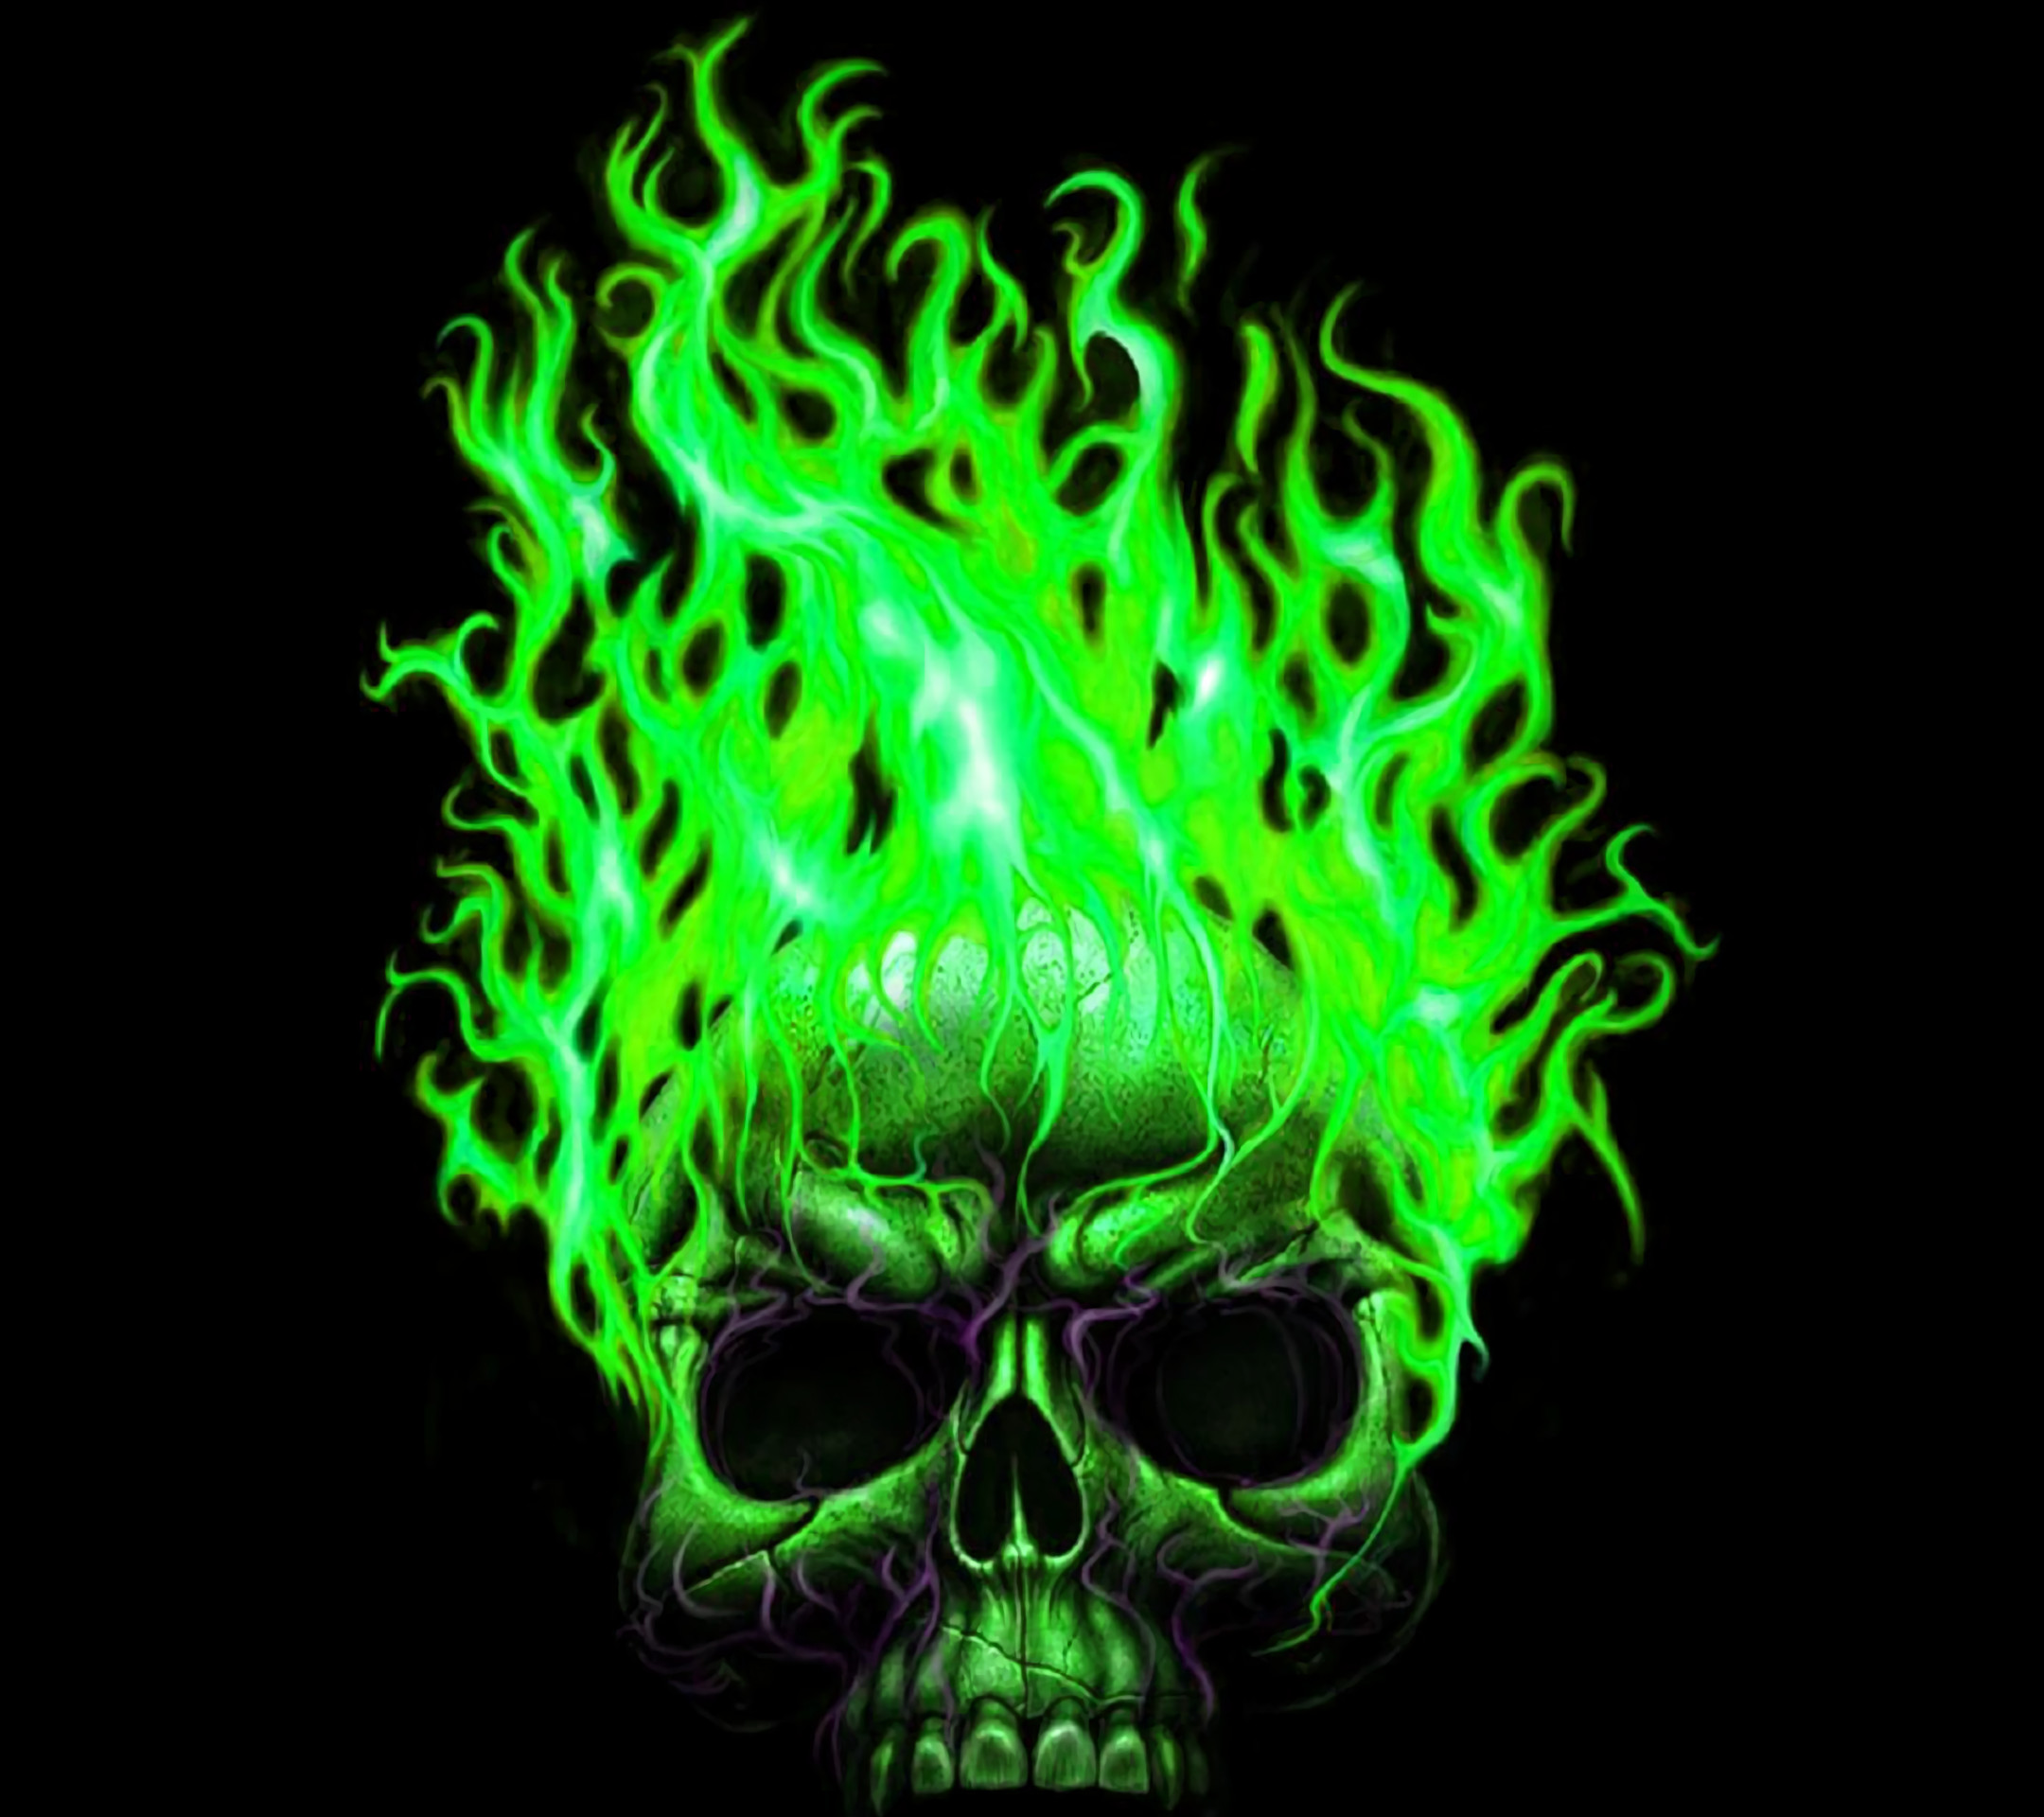 Green Flaming Skull Wallpapers by Molly Dennis #14